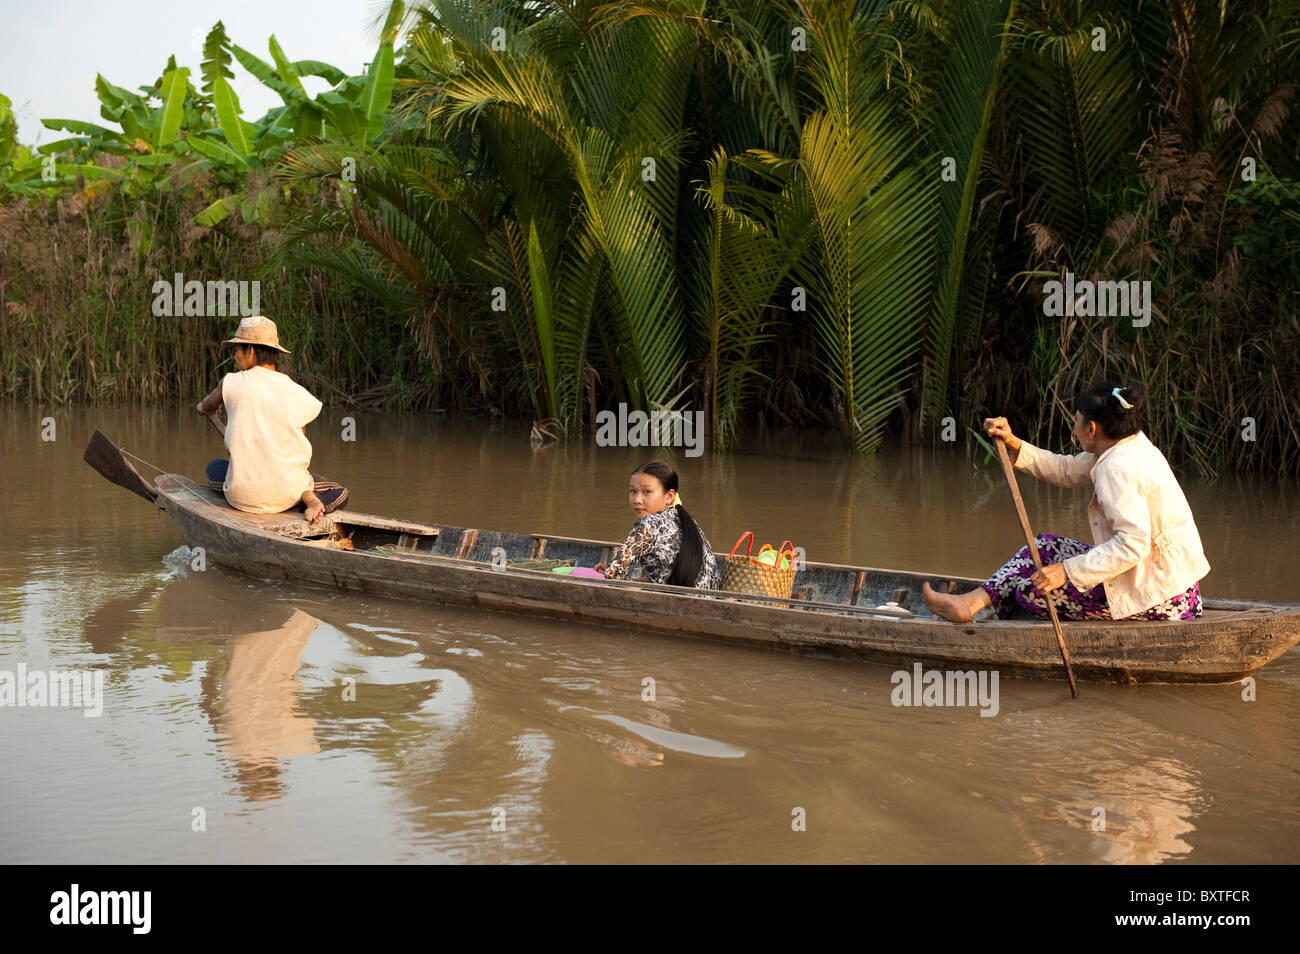 canoe on the Mekong Delta, Ben Tre, Vietnam - Stock Image